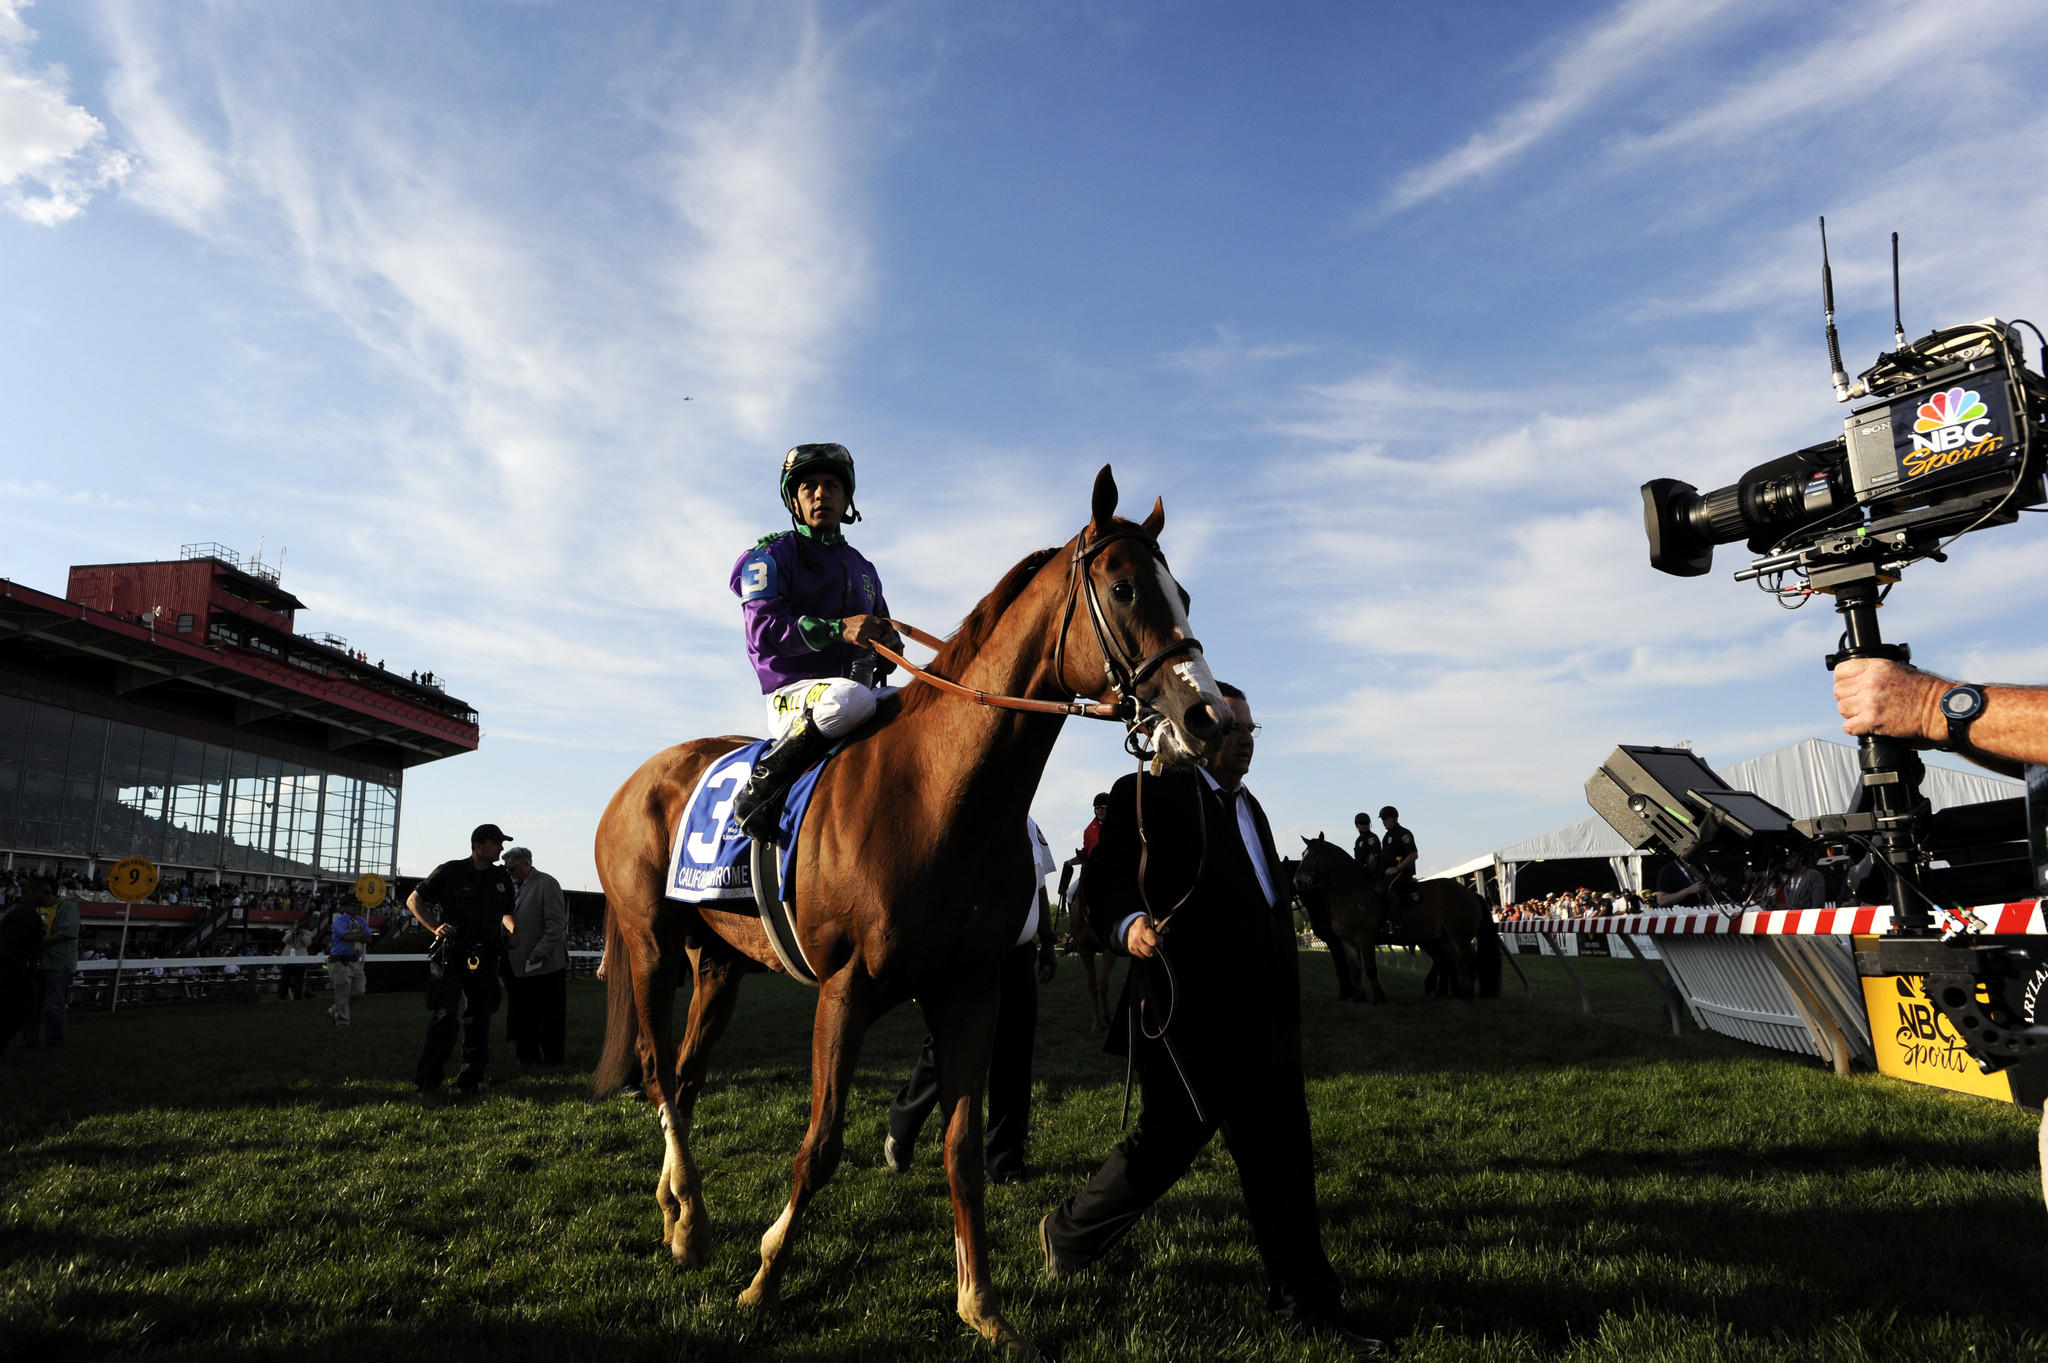 BALTIMORE, MD -- 5/17/14 -- The NBC Sports camera follows Jockey Victor Espinoza and California Chrome after they won the 139th Preakness Stakes at Pimlico Race Course.